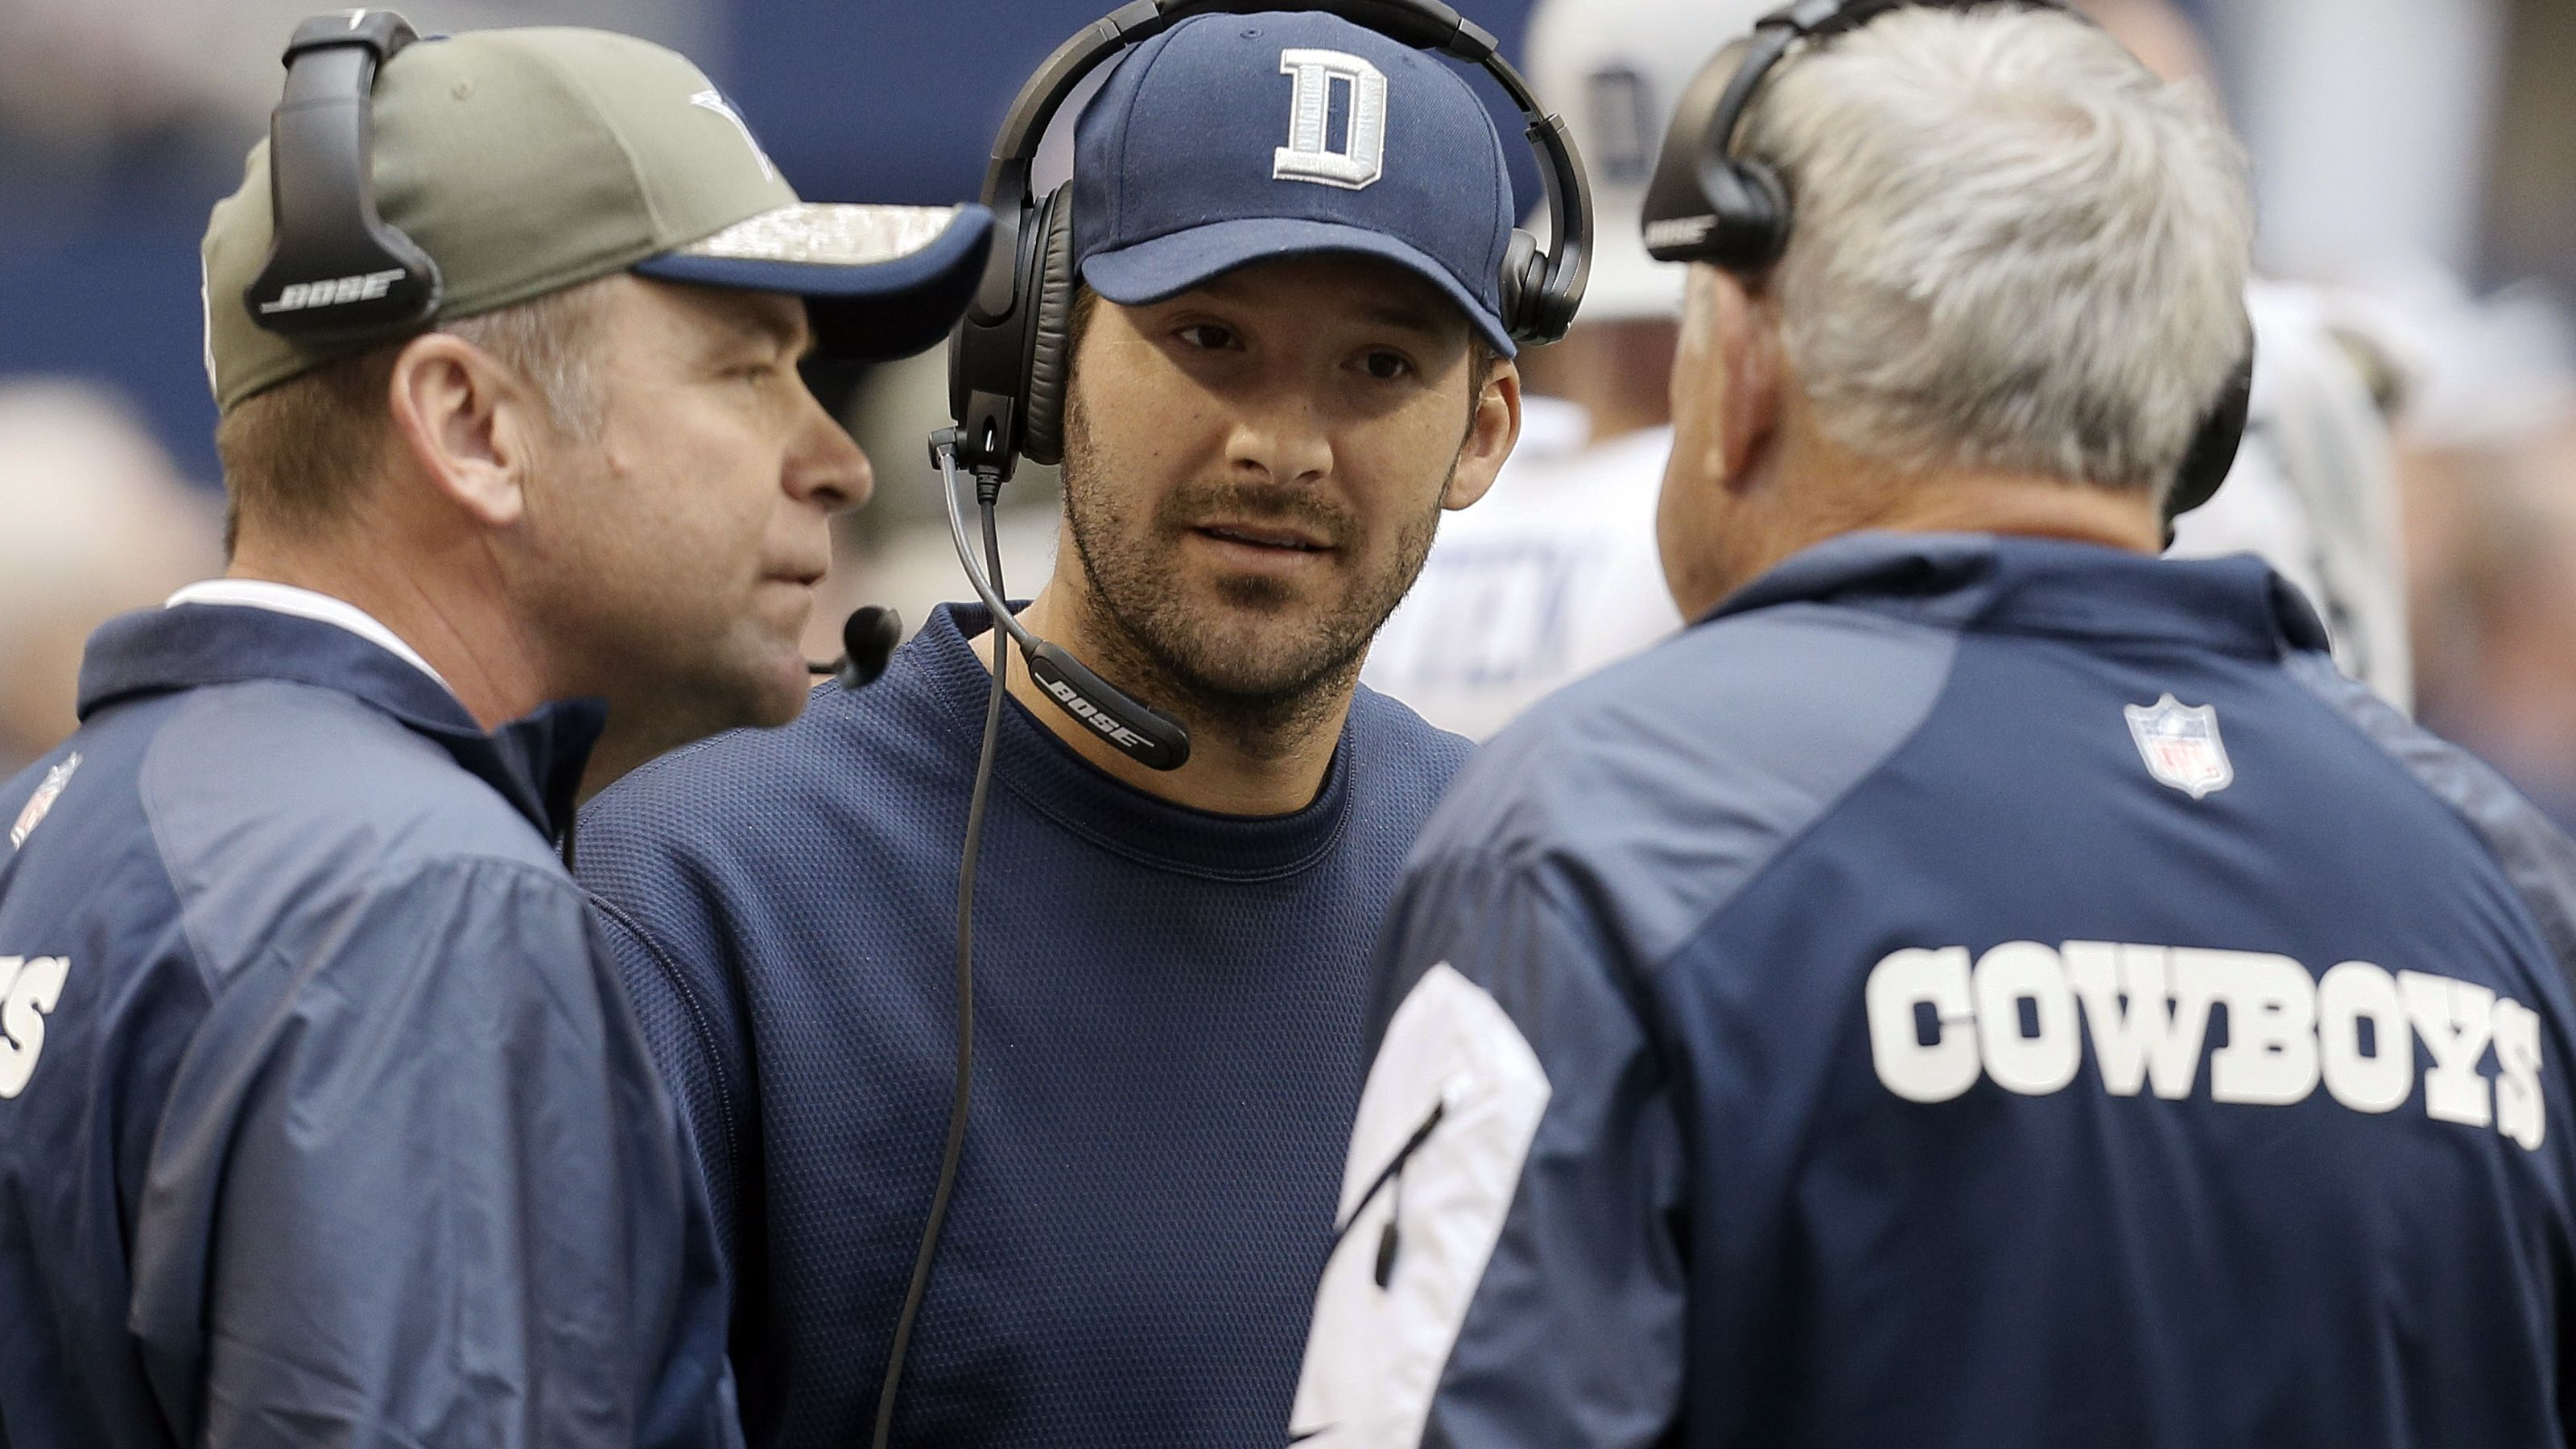 Cowboys Blog - Tony Romo: The Undeniable Mr. Everything